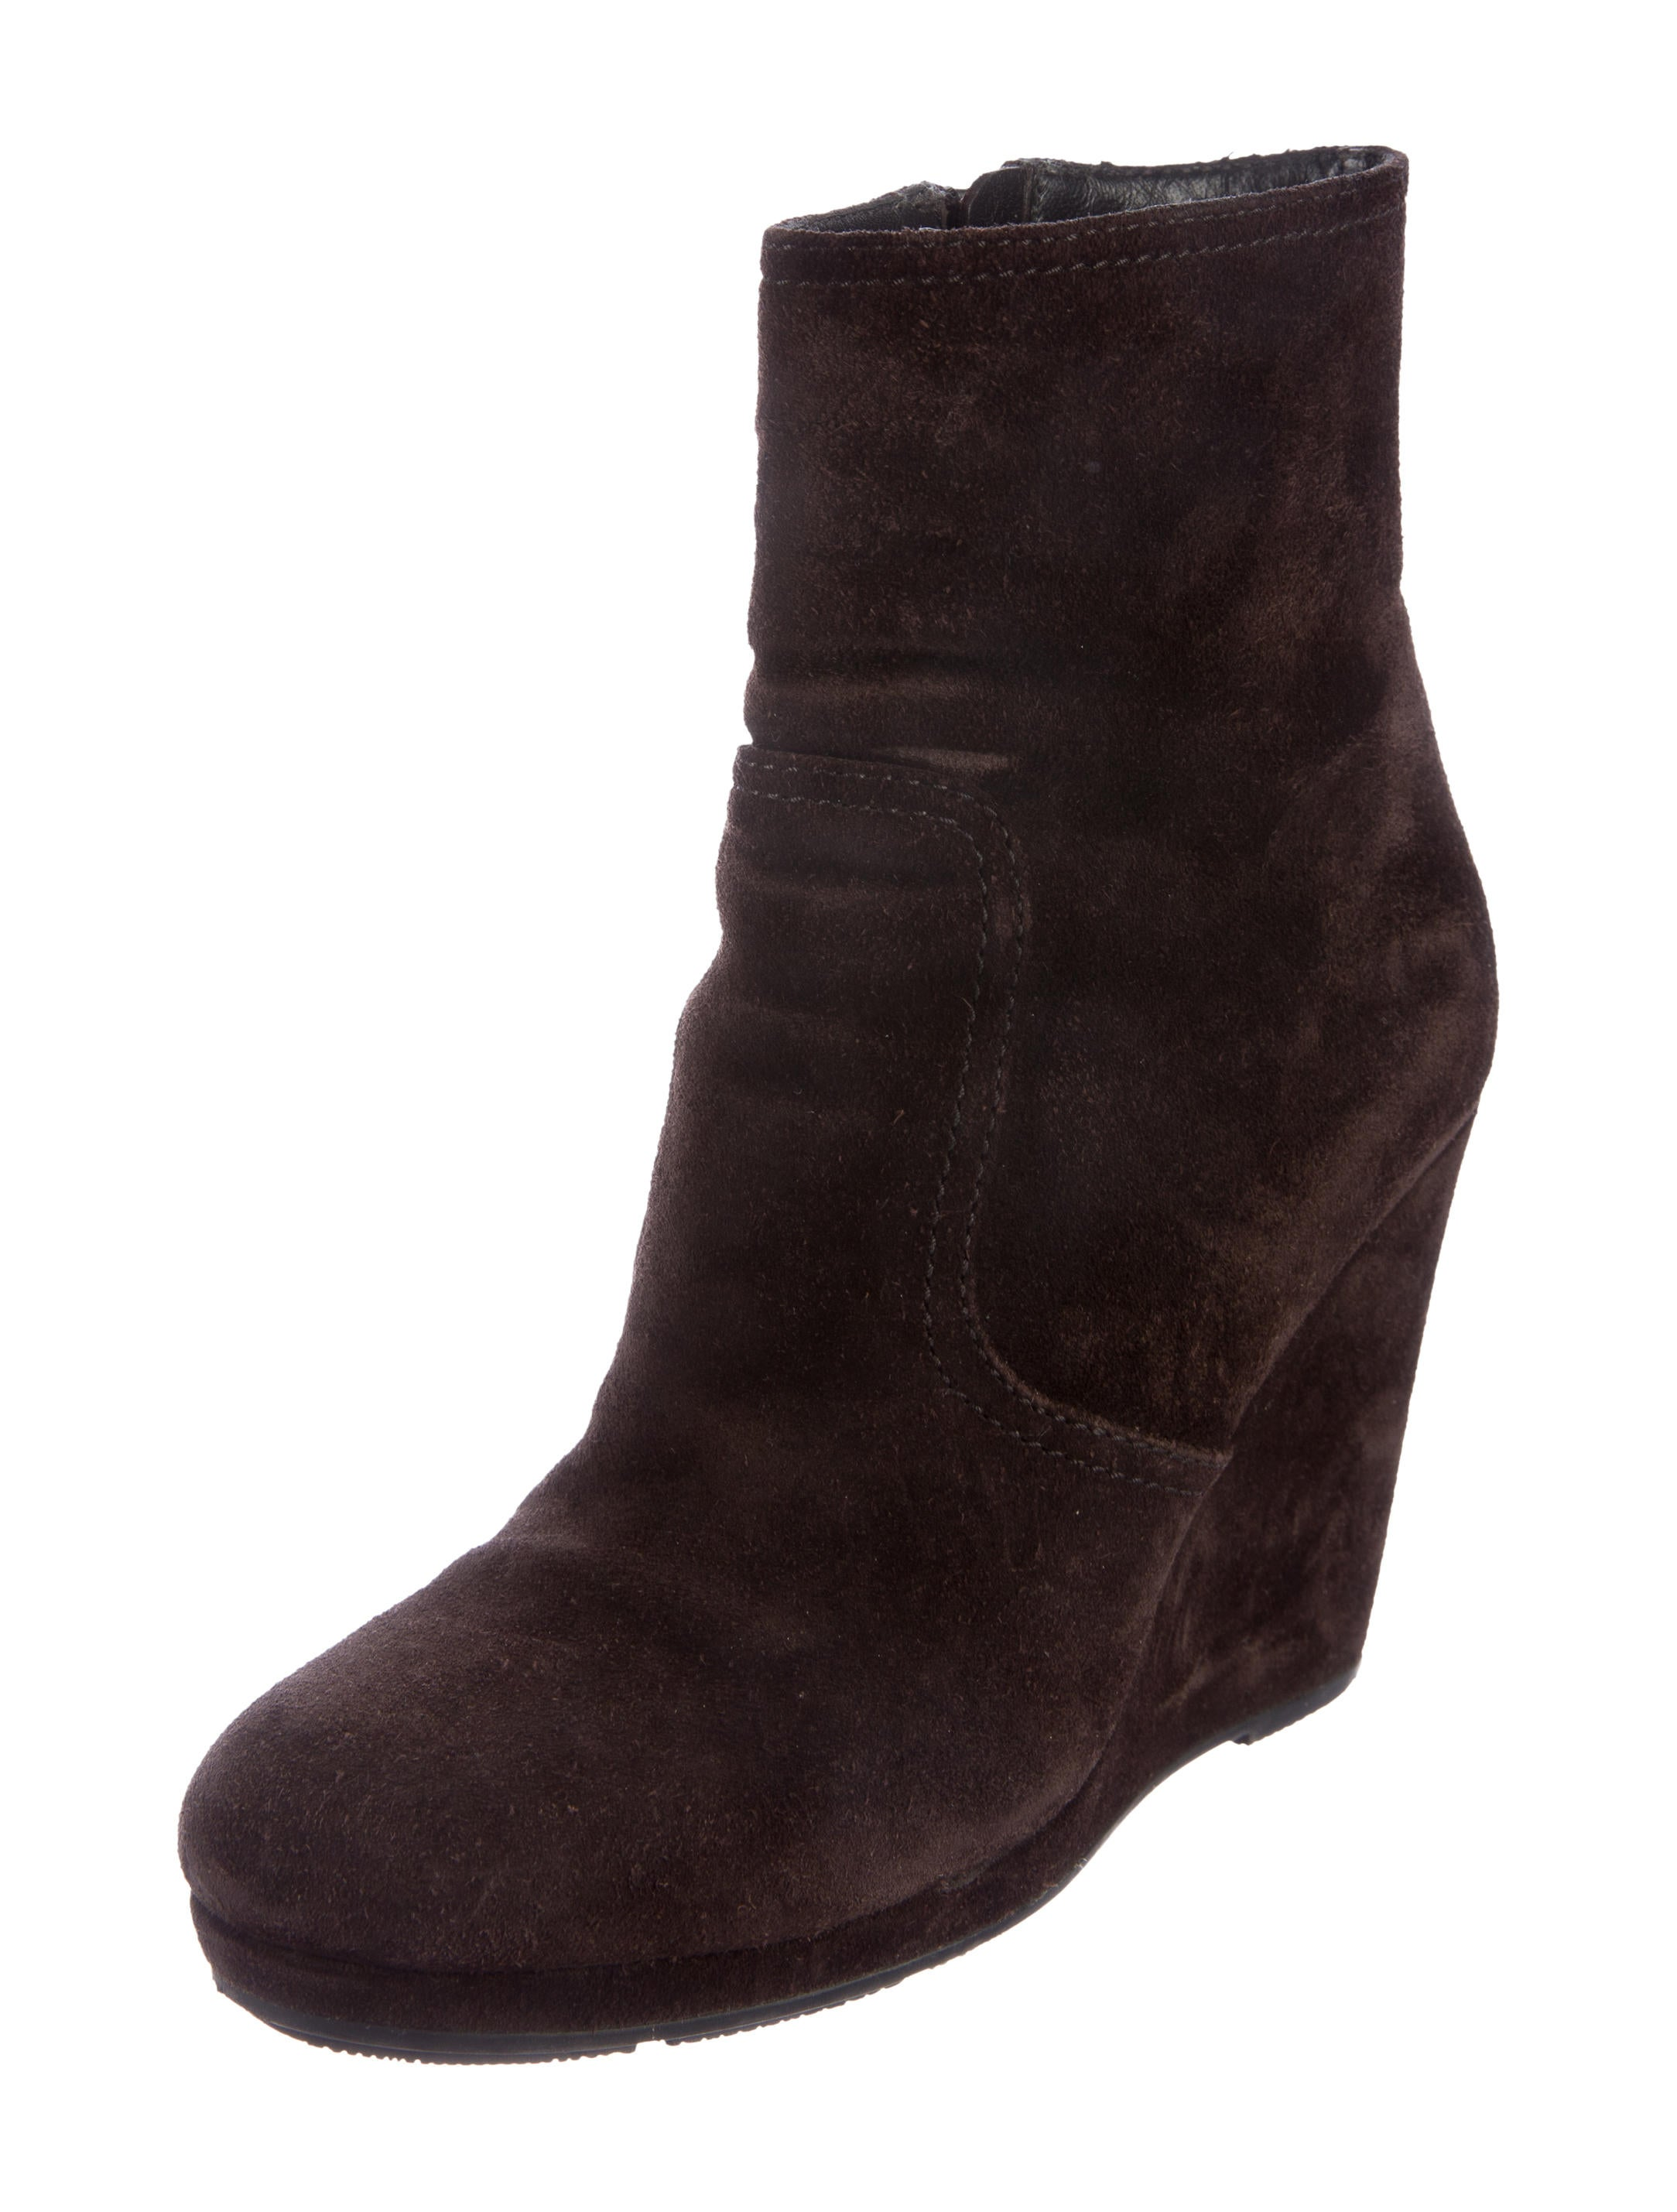 prada sport wedge ankle boots shoes wpr41159 the